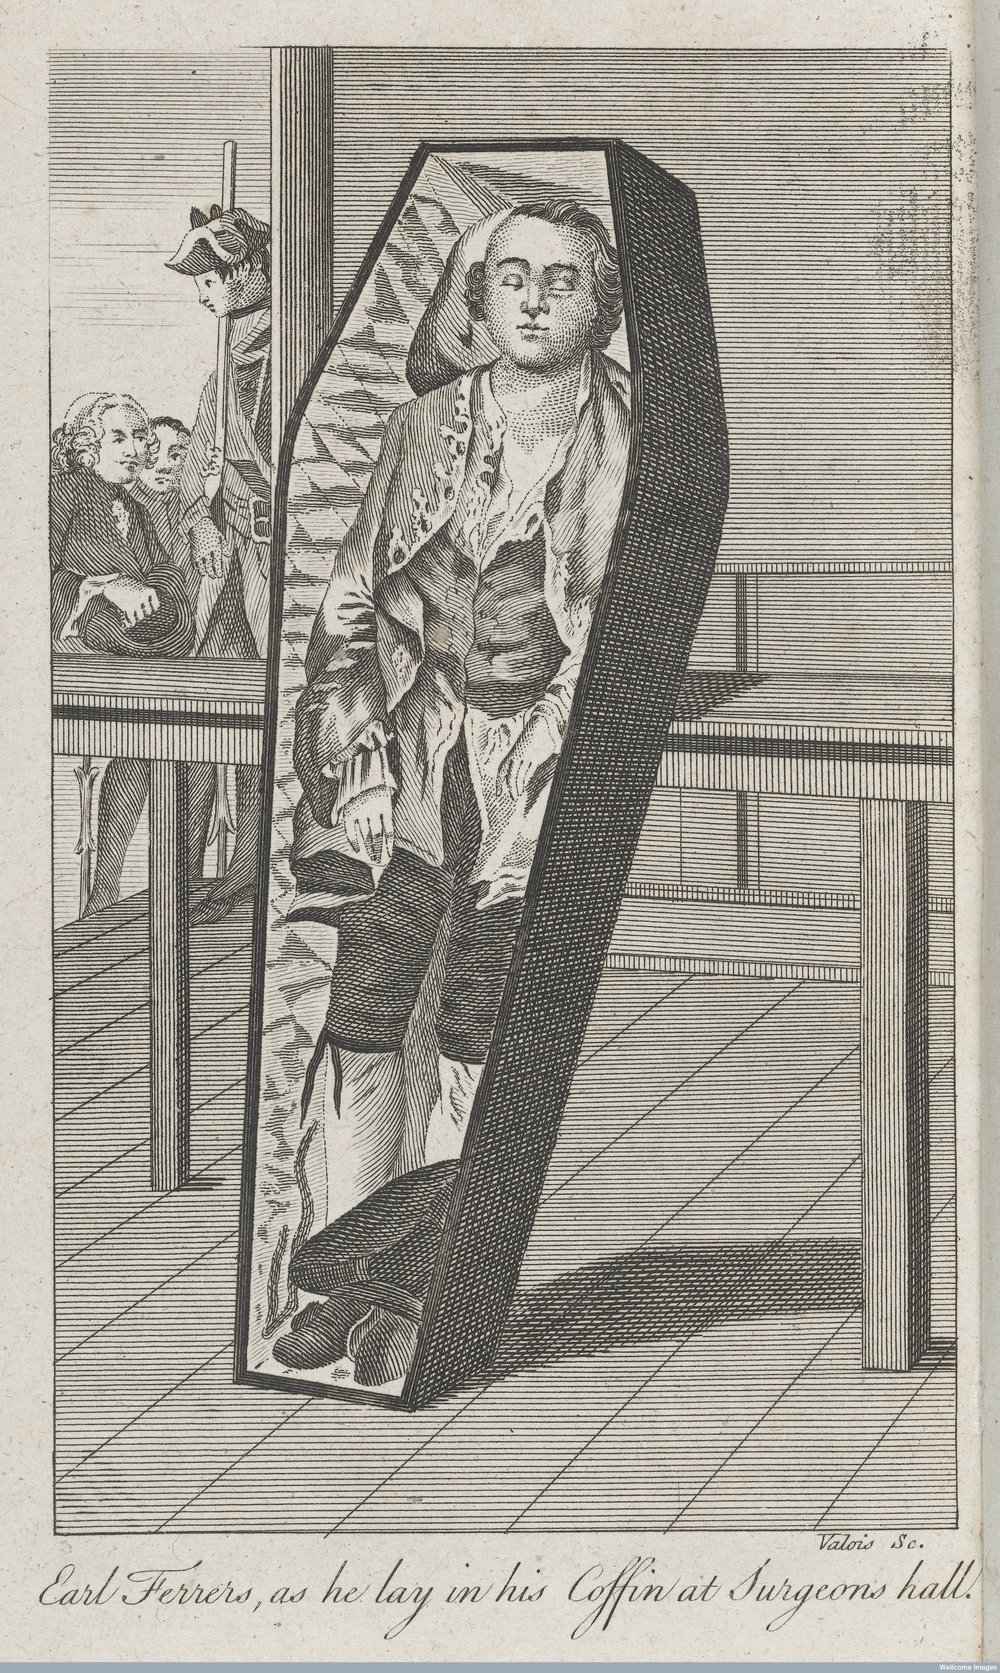 E arl Ferrers in his coffin at Surgeon's Hall - Wellcome Trust